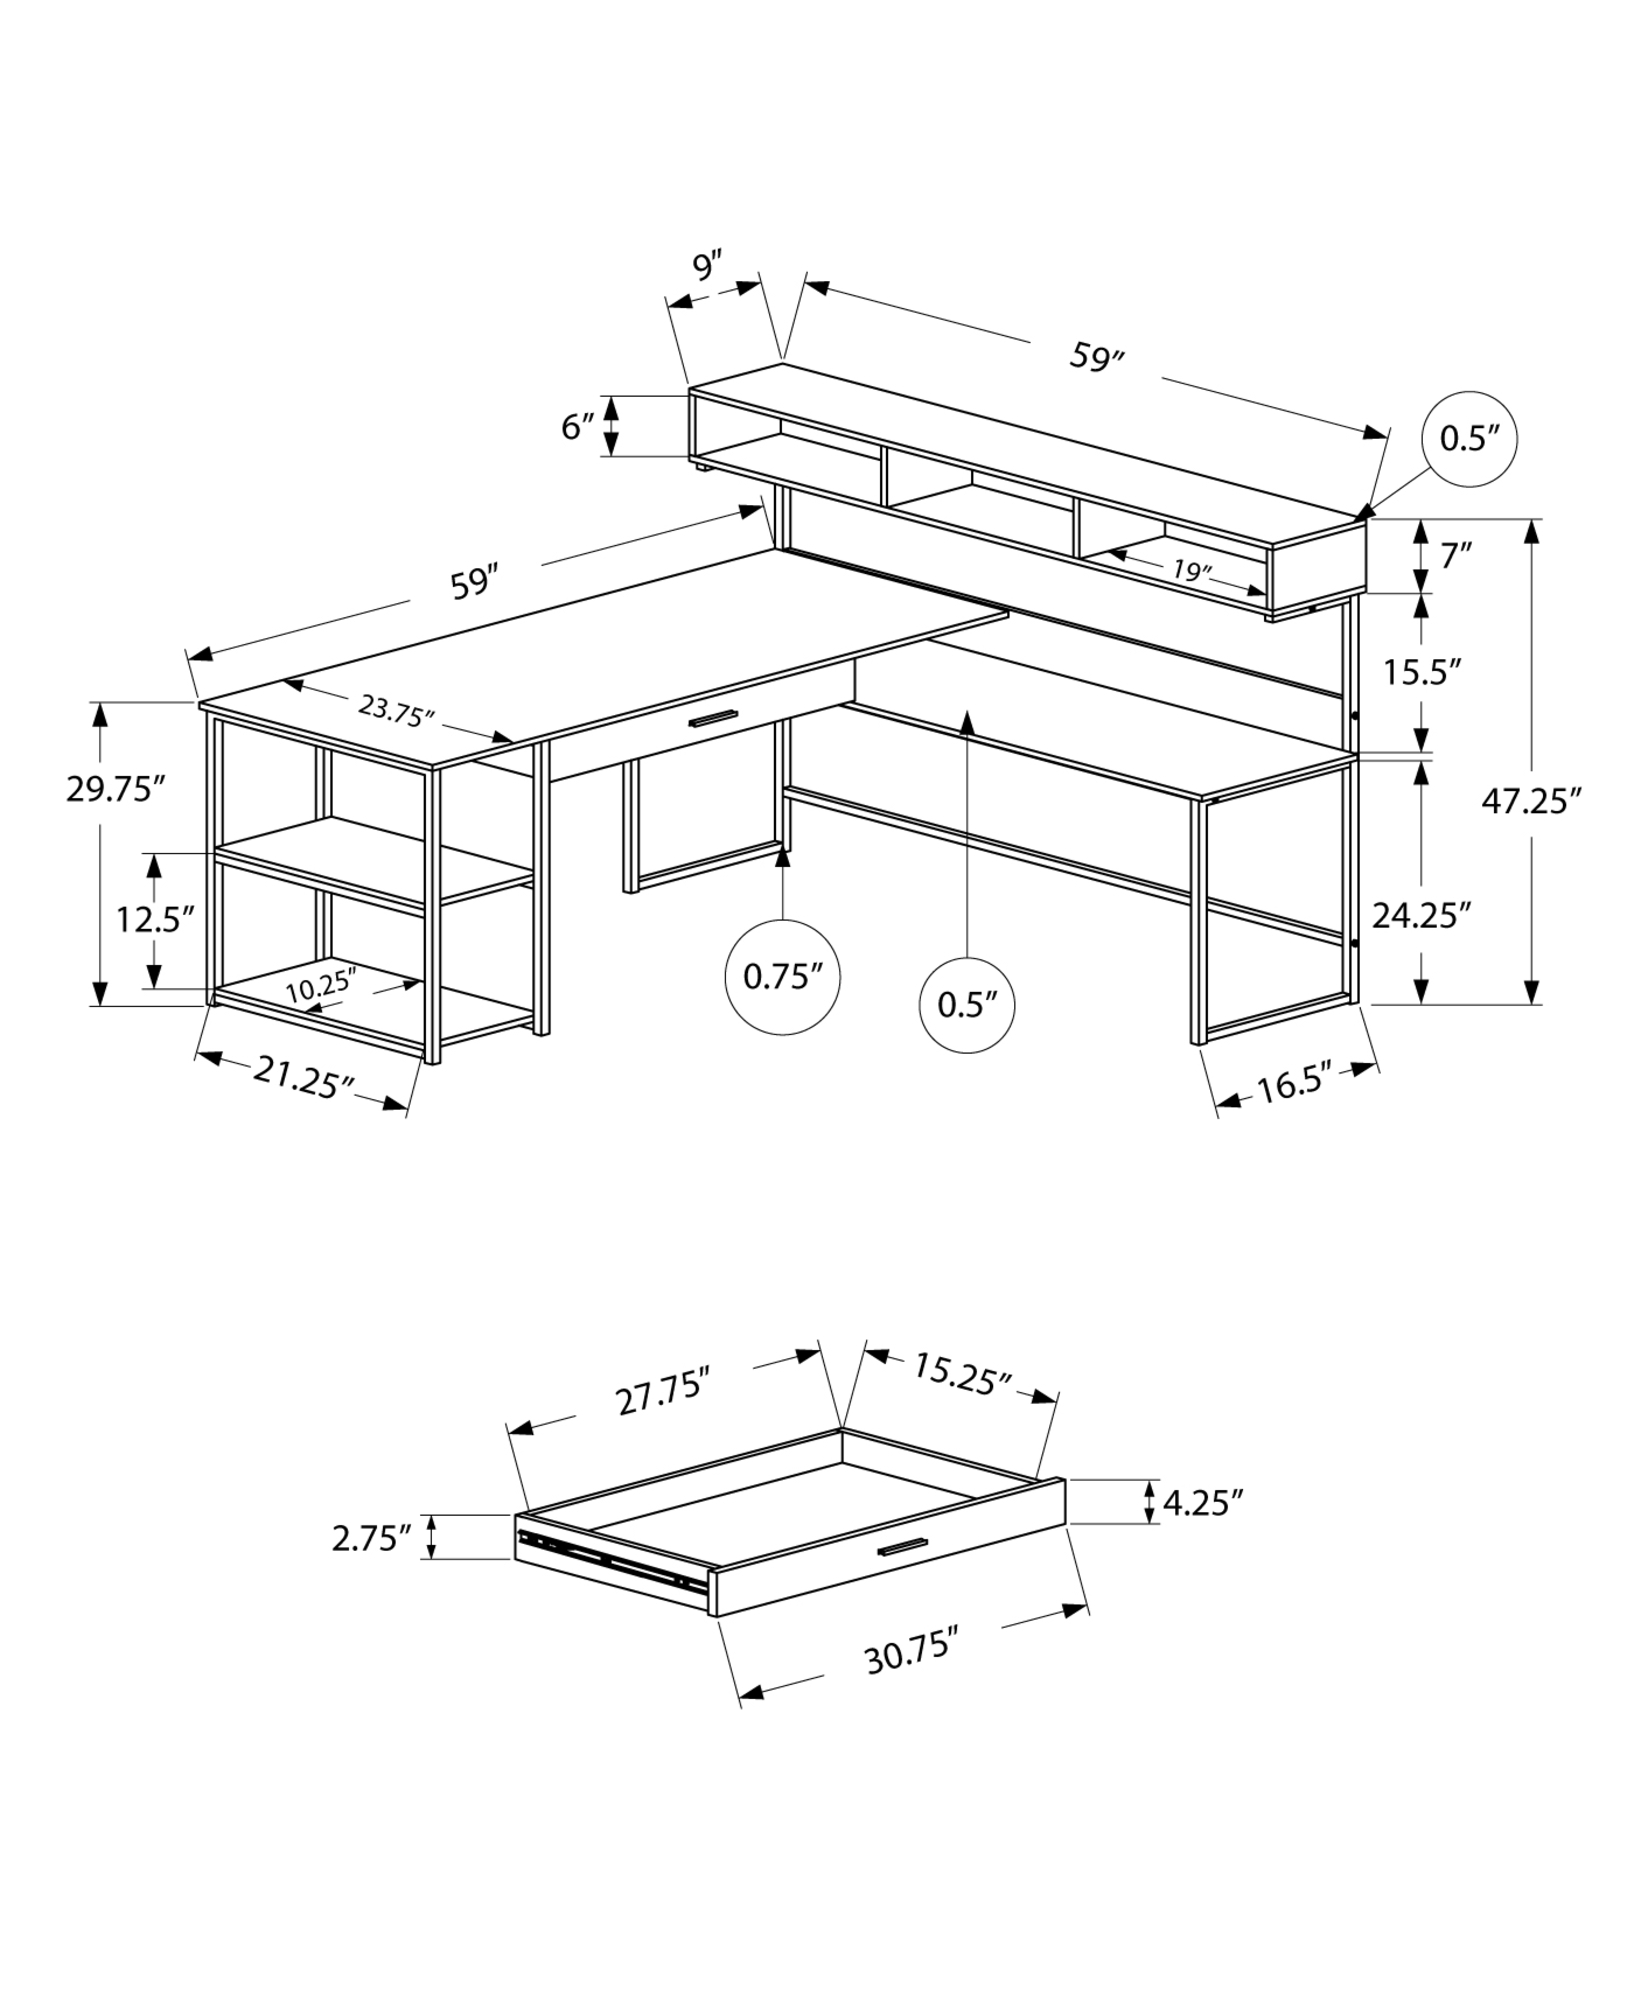 hight resolution of desk schematic